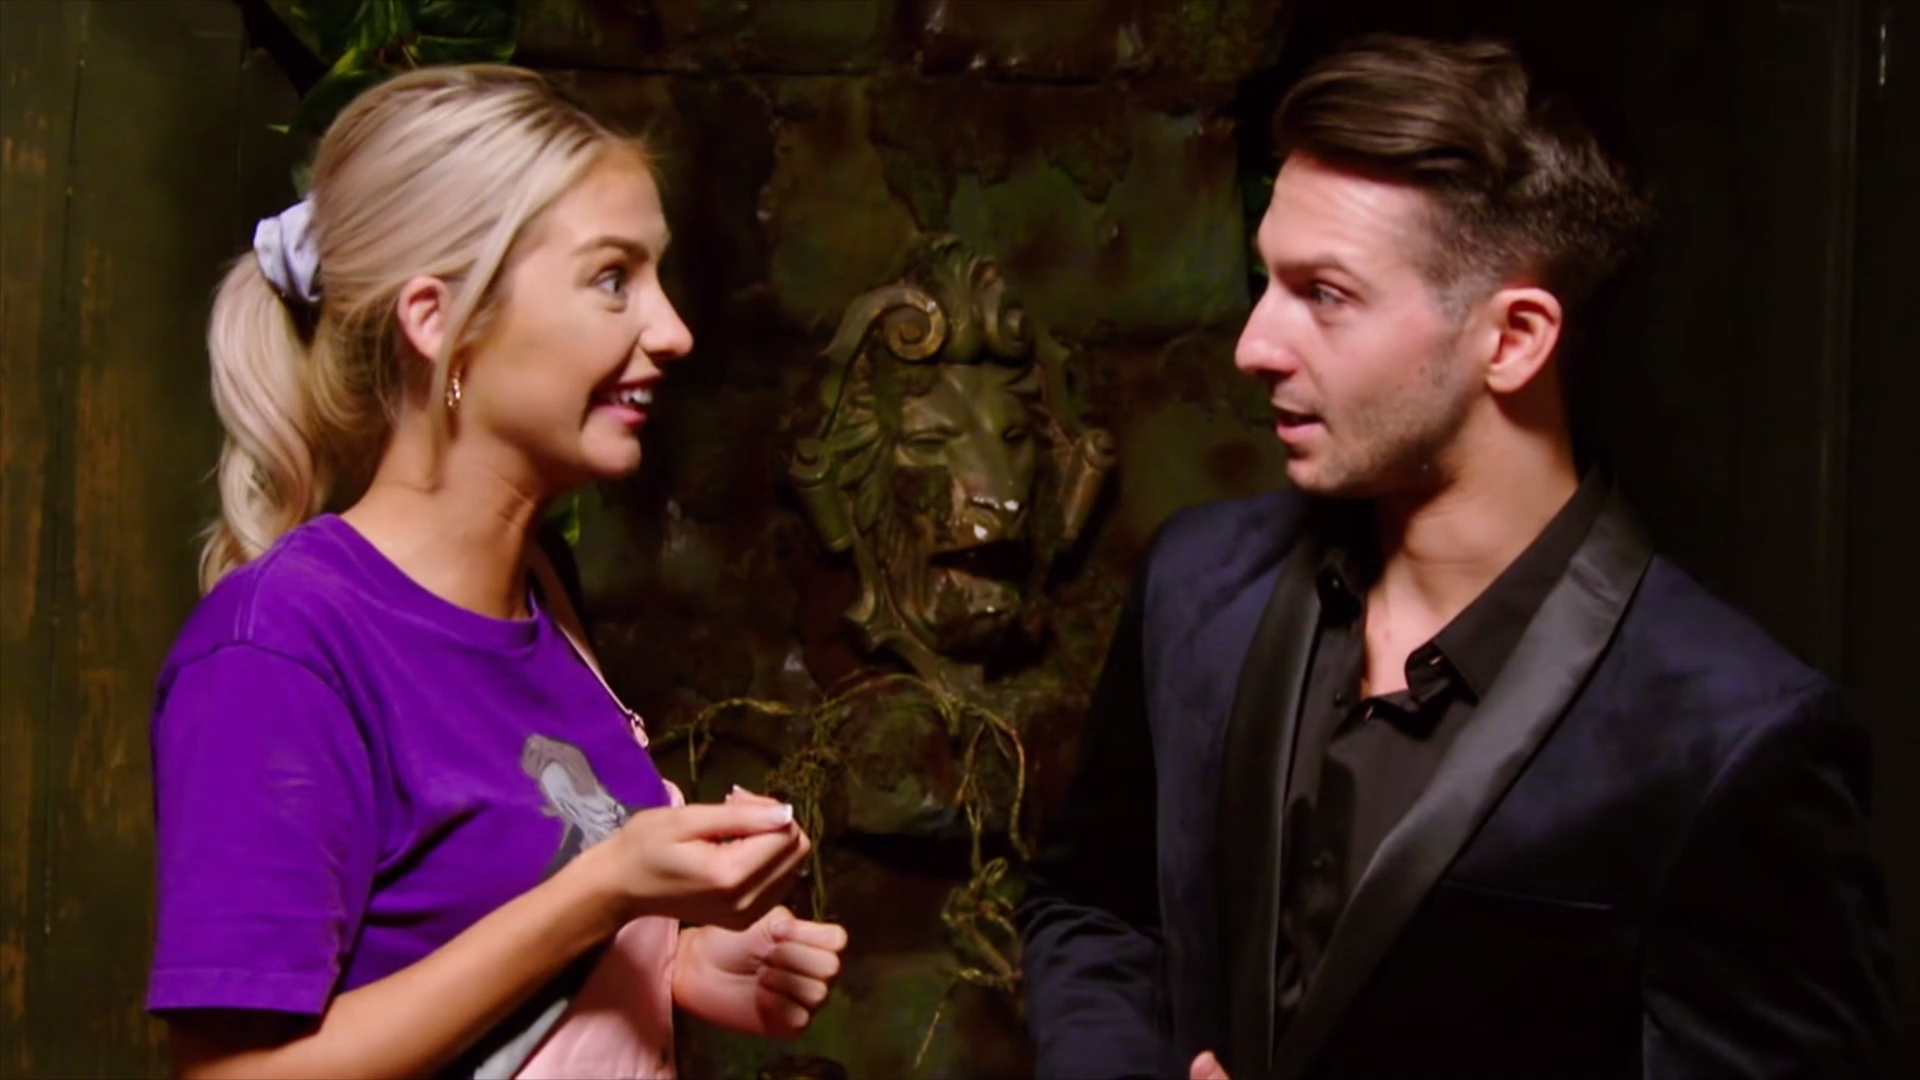 George and Josie face their final challenge